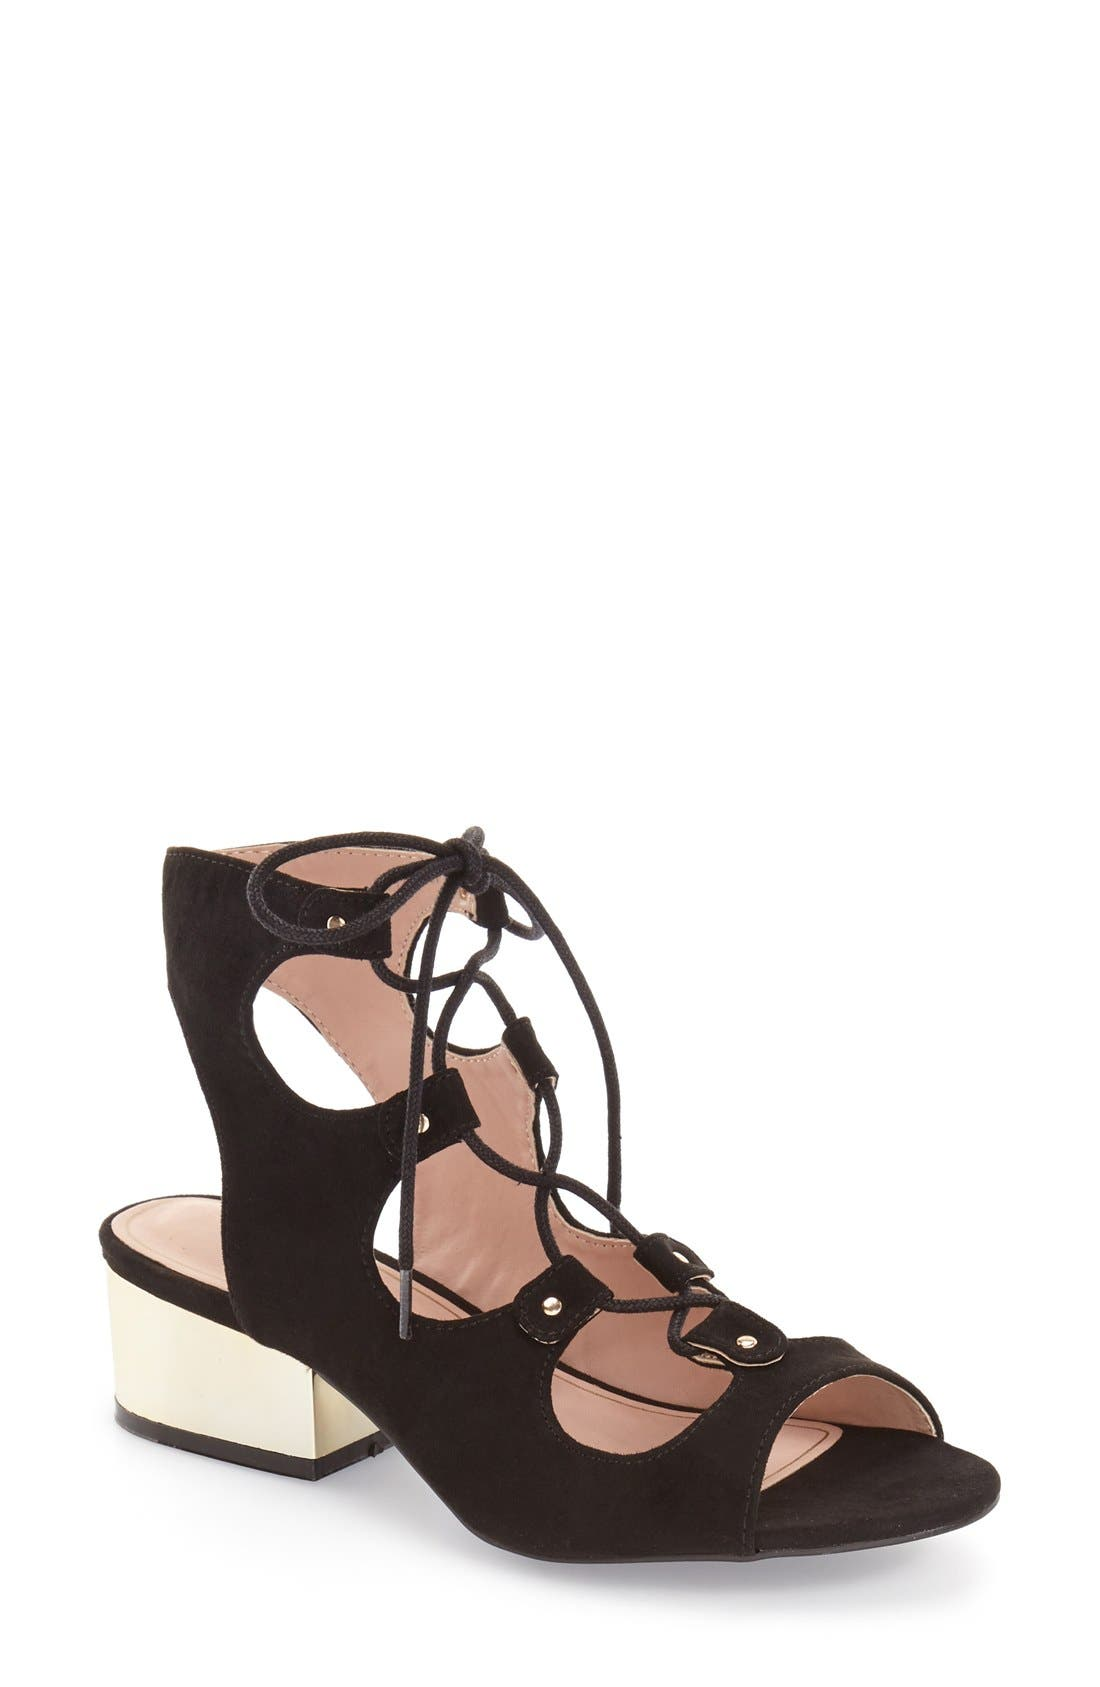 Main Image - Topshop 'Daily' Ghillie Sandal (Women)